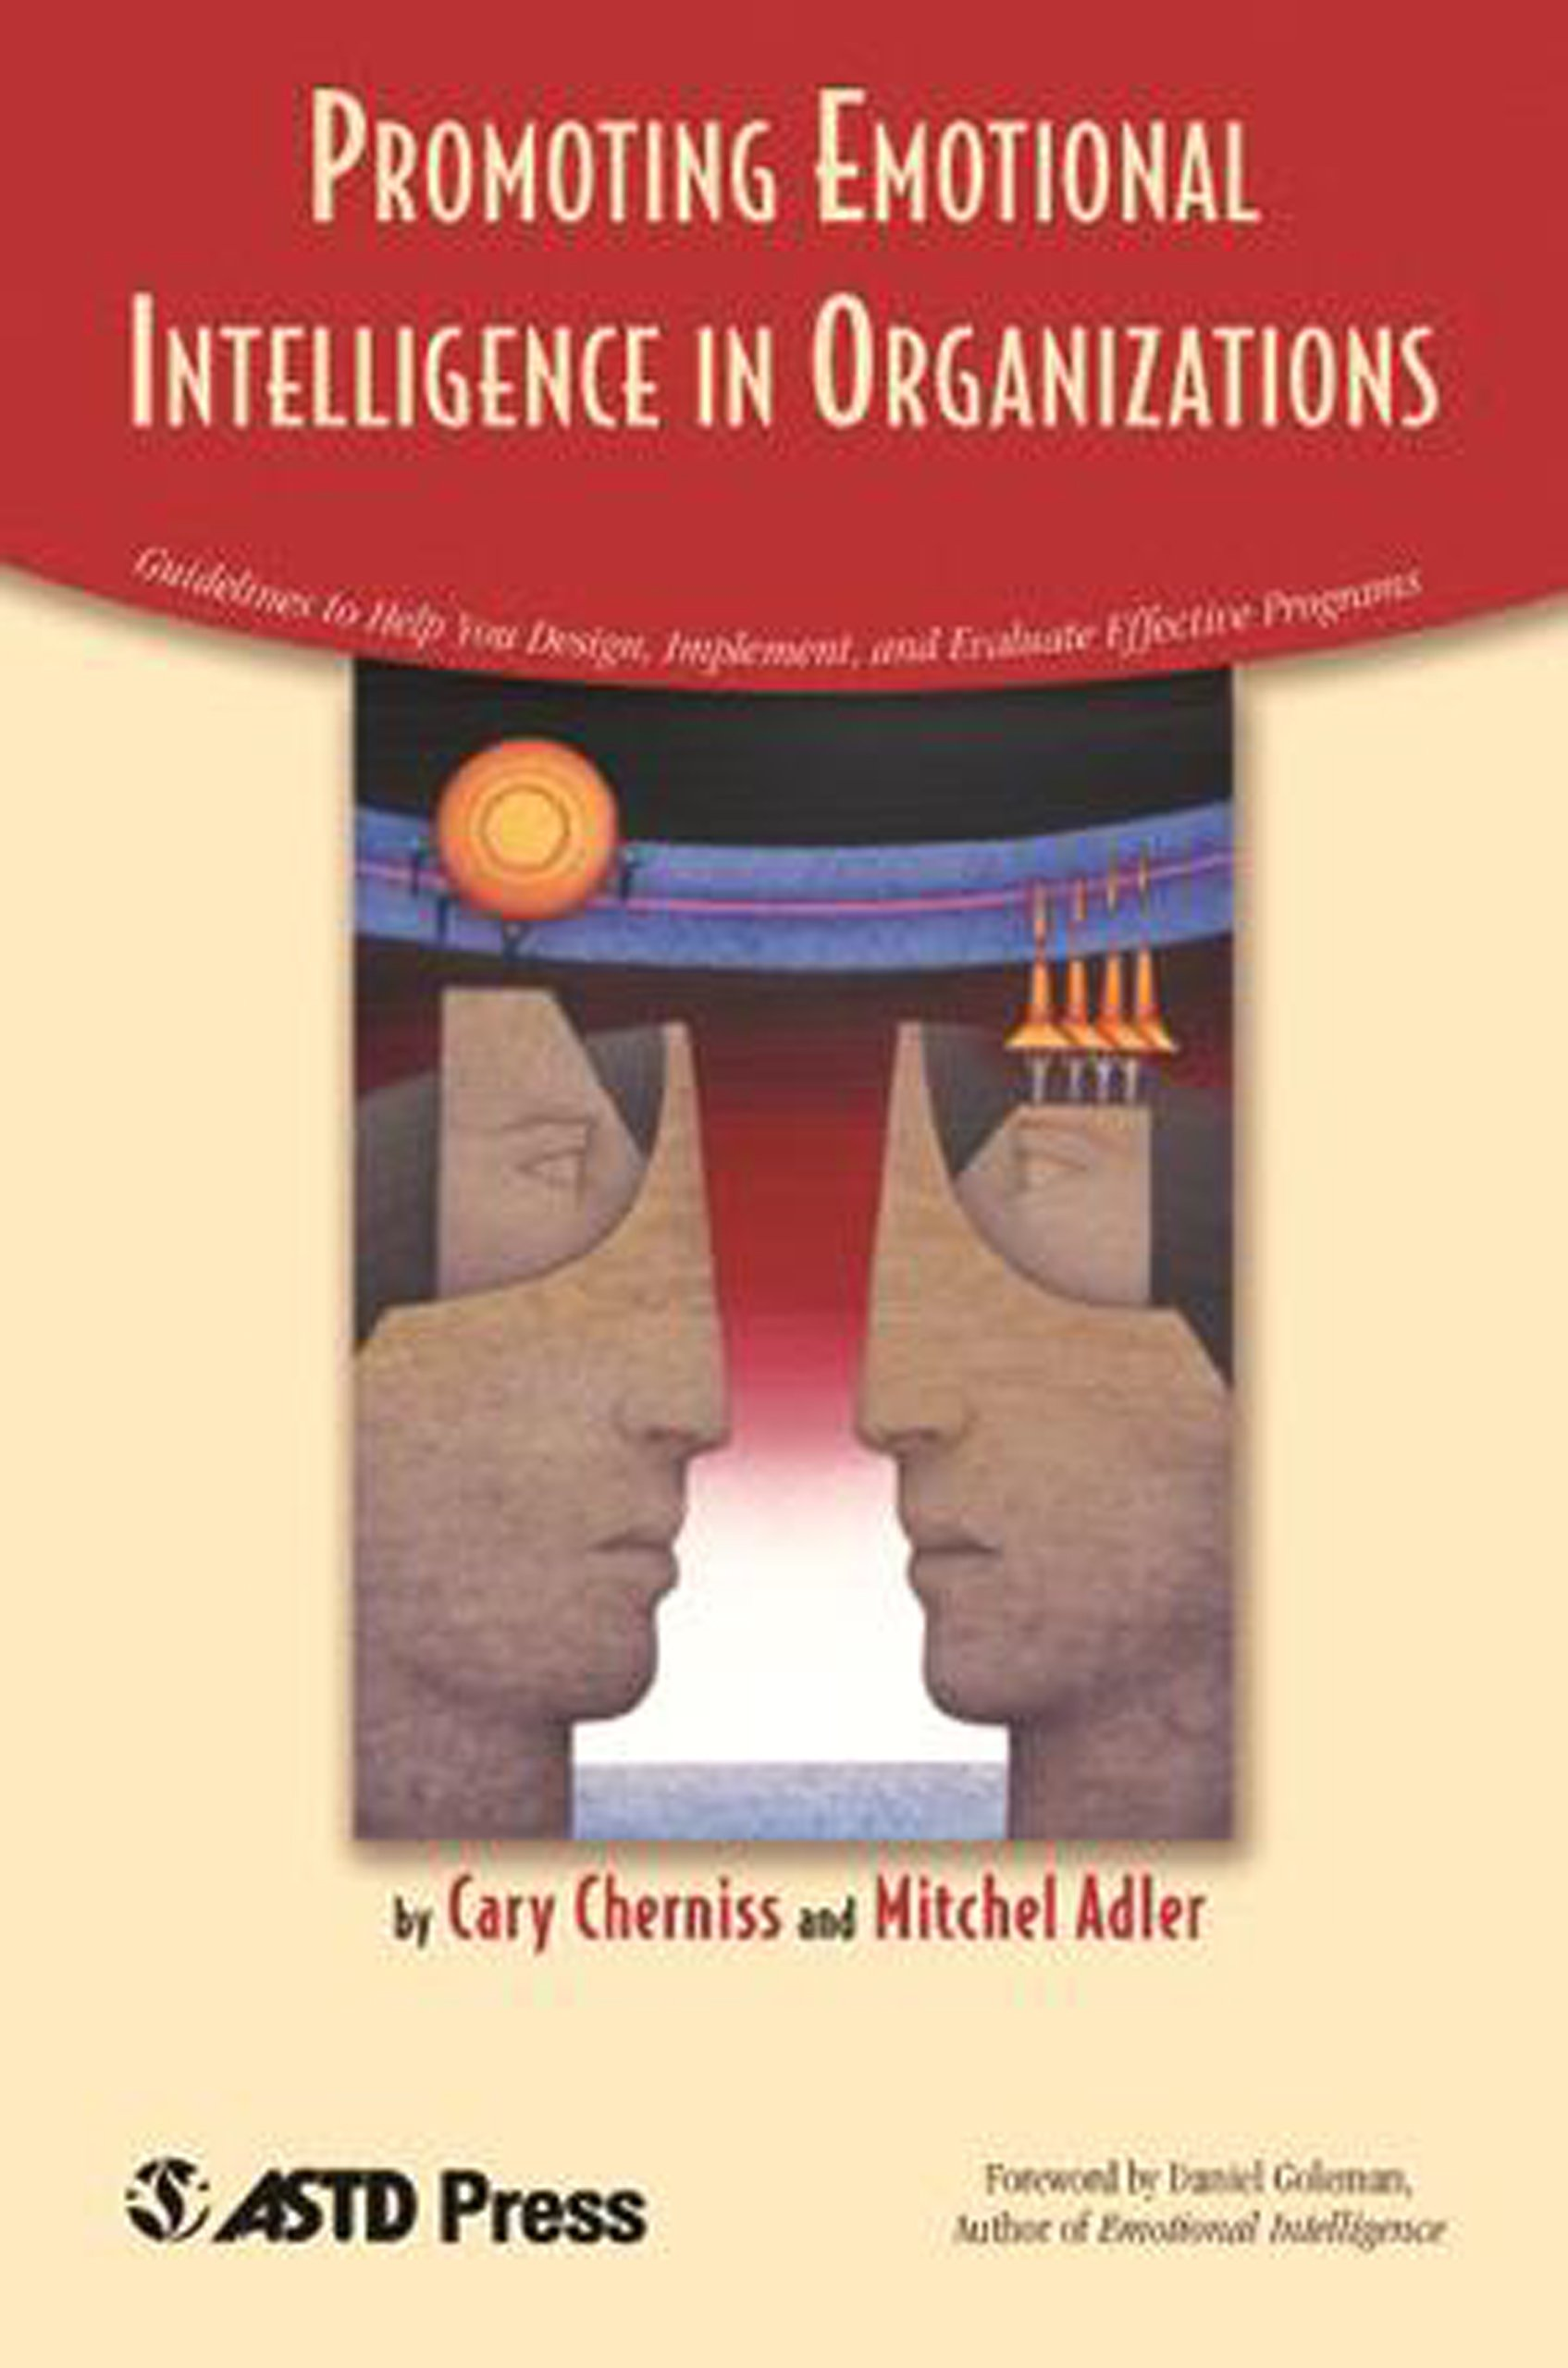 promoting emotional intelligence in organizations cary cherniss